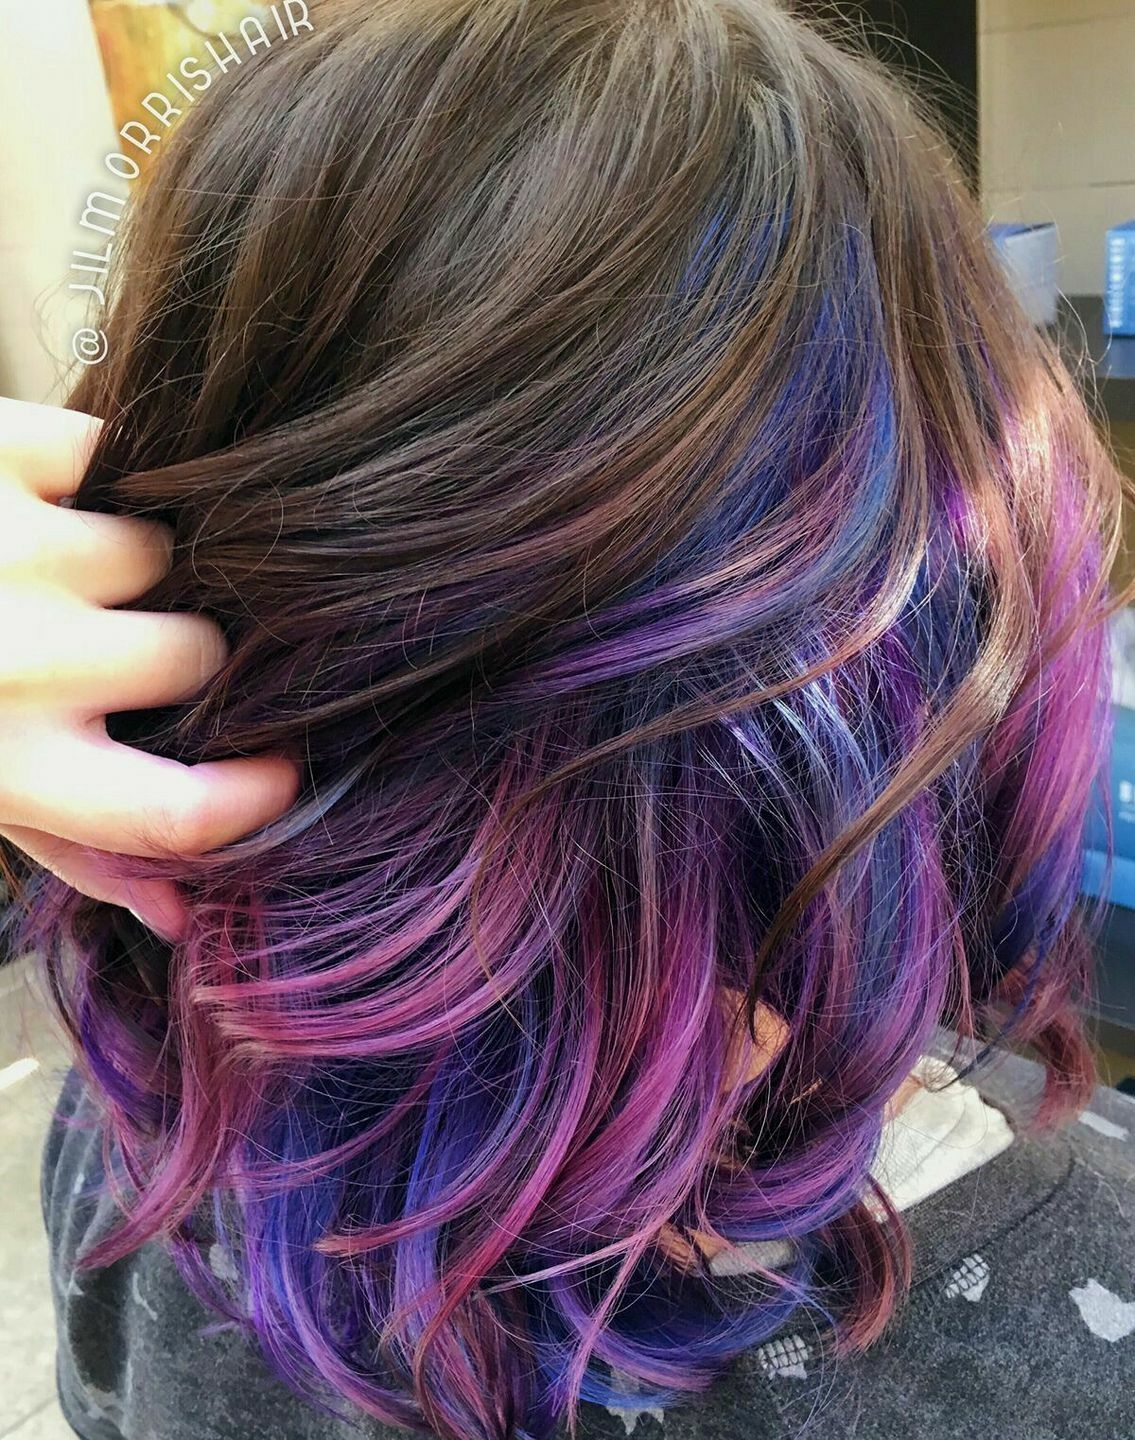 Pin by kate grandusky on hair ideas pinterest hair coloring rainbow unicorn hair purple pink blue joico intensity waves and curls galaxy hair pmusecretfo Image collections